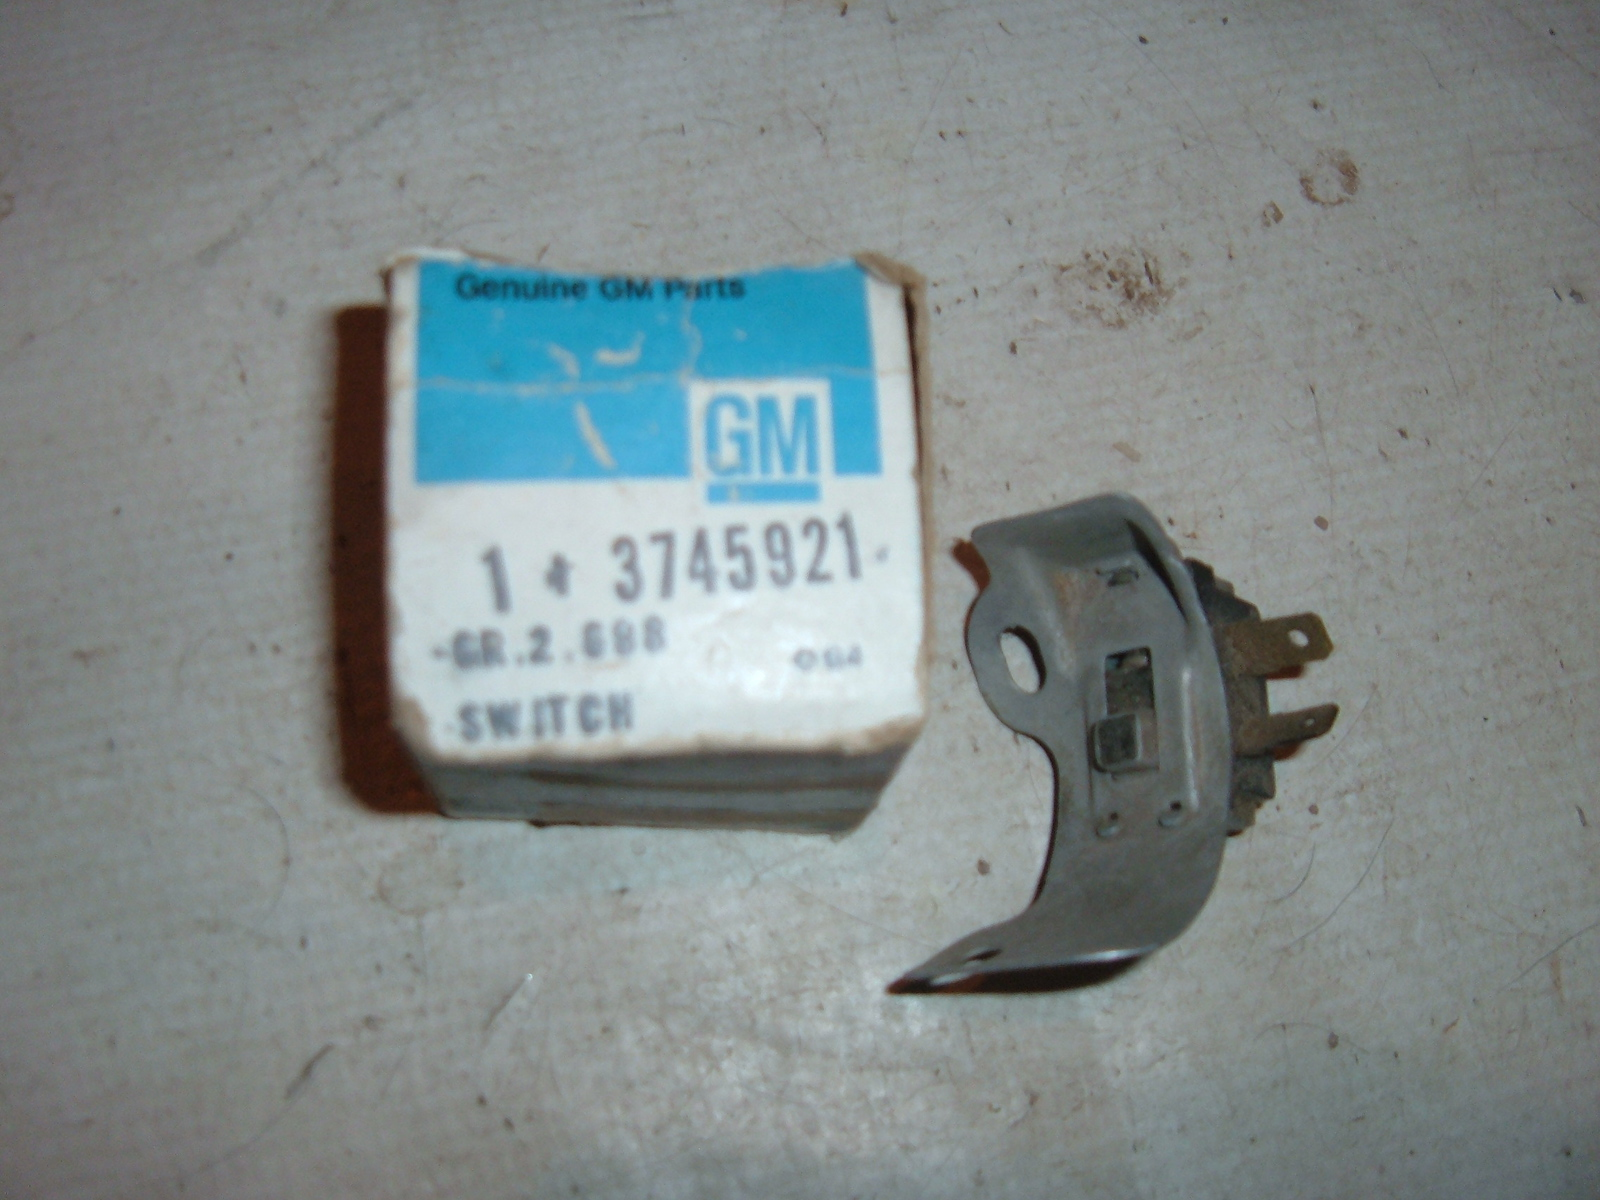 1958 -72 chevroltet buick oldsmobile pontiac back up reverse light switch nos gm 3745921 (z 3745921)